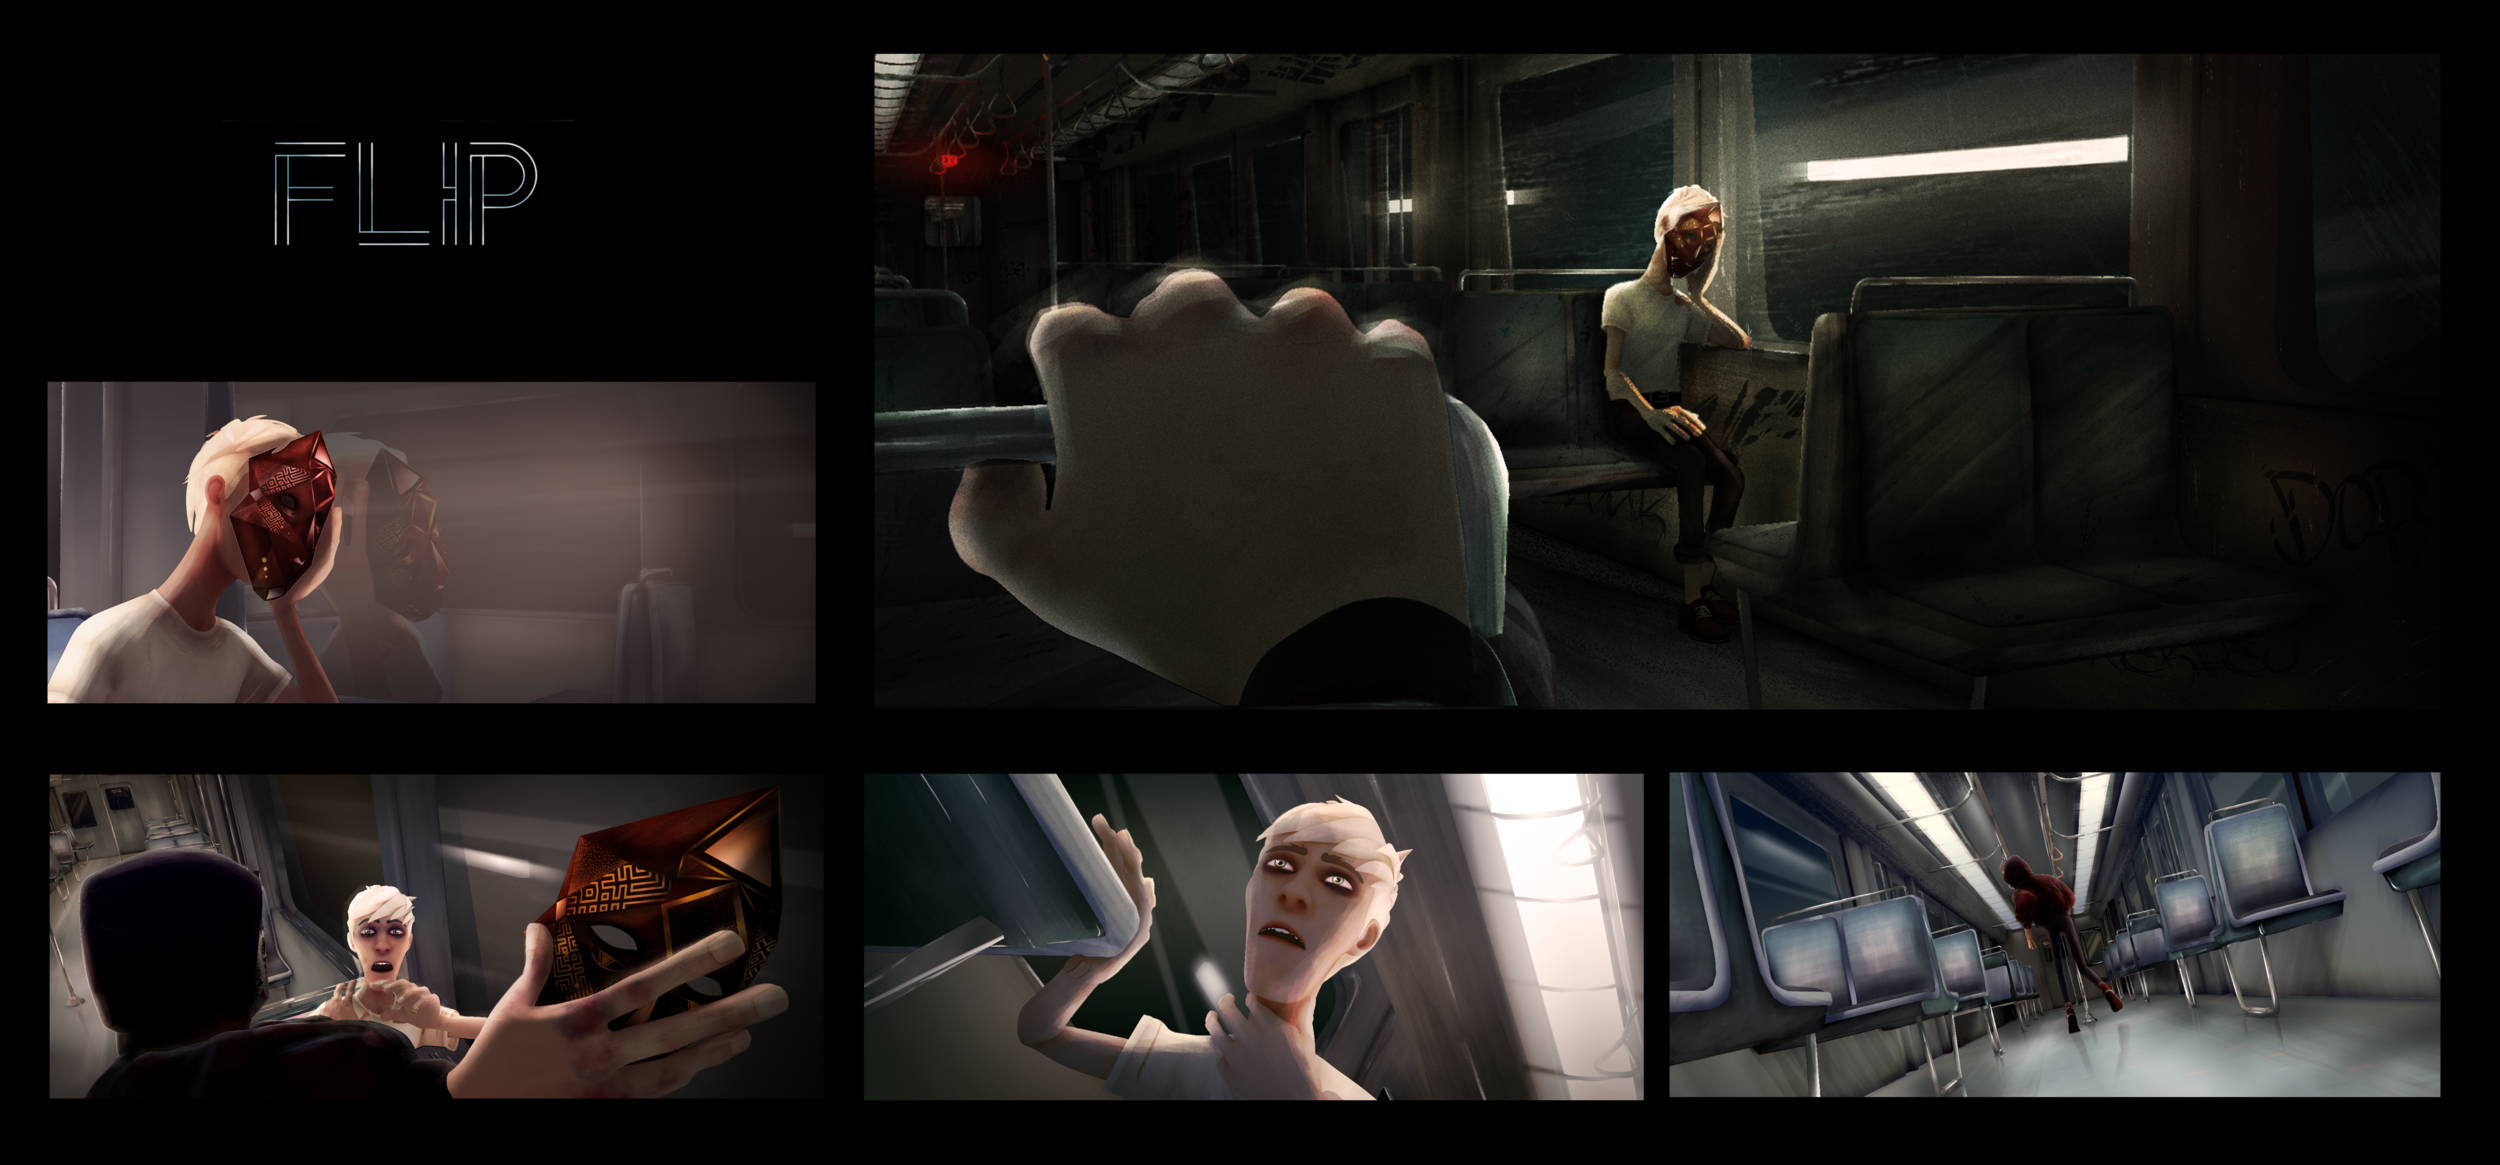 planche_sequence_int_metro.png